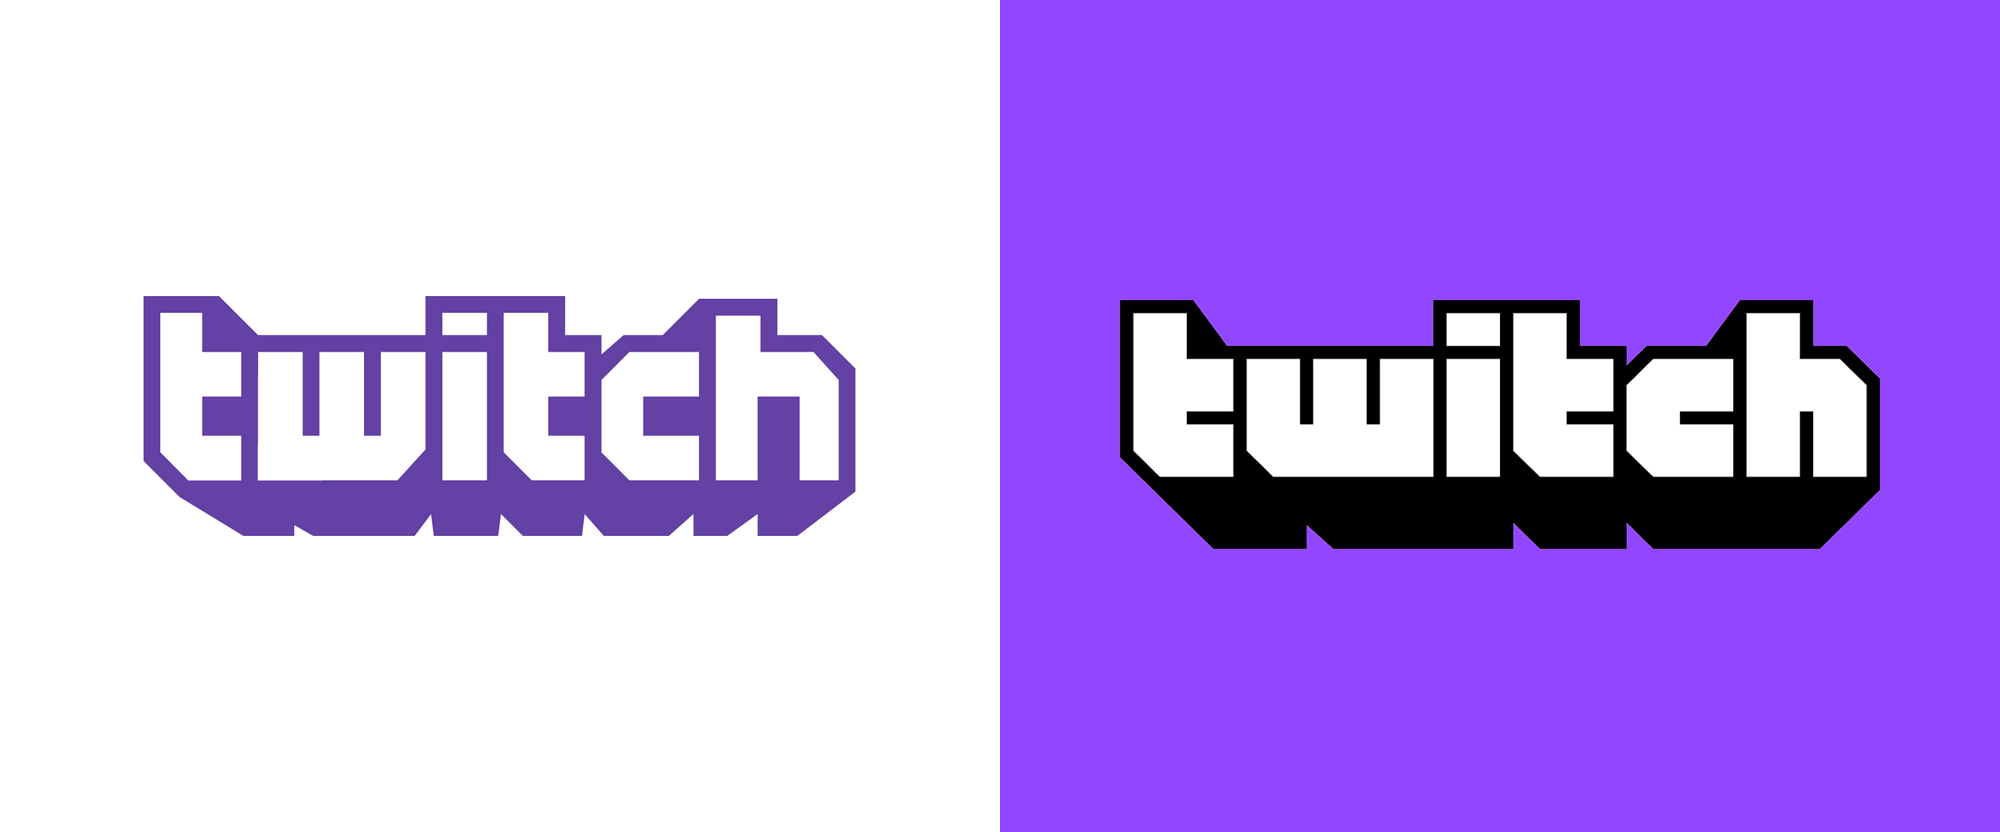 New Logo and Identity for Twitch by COLLINS and In-house